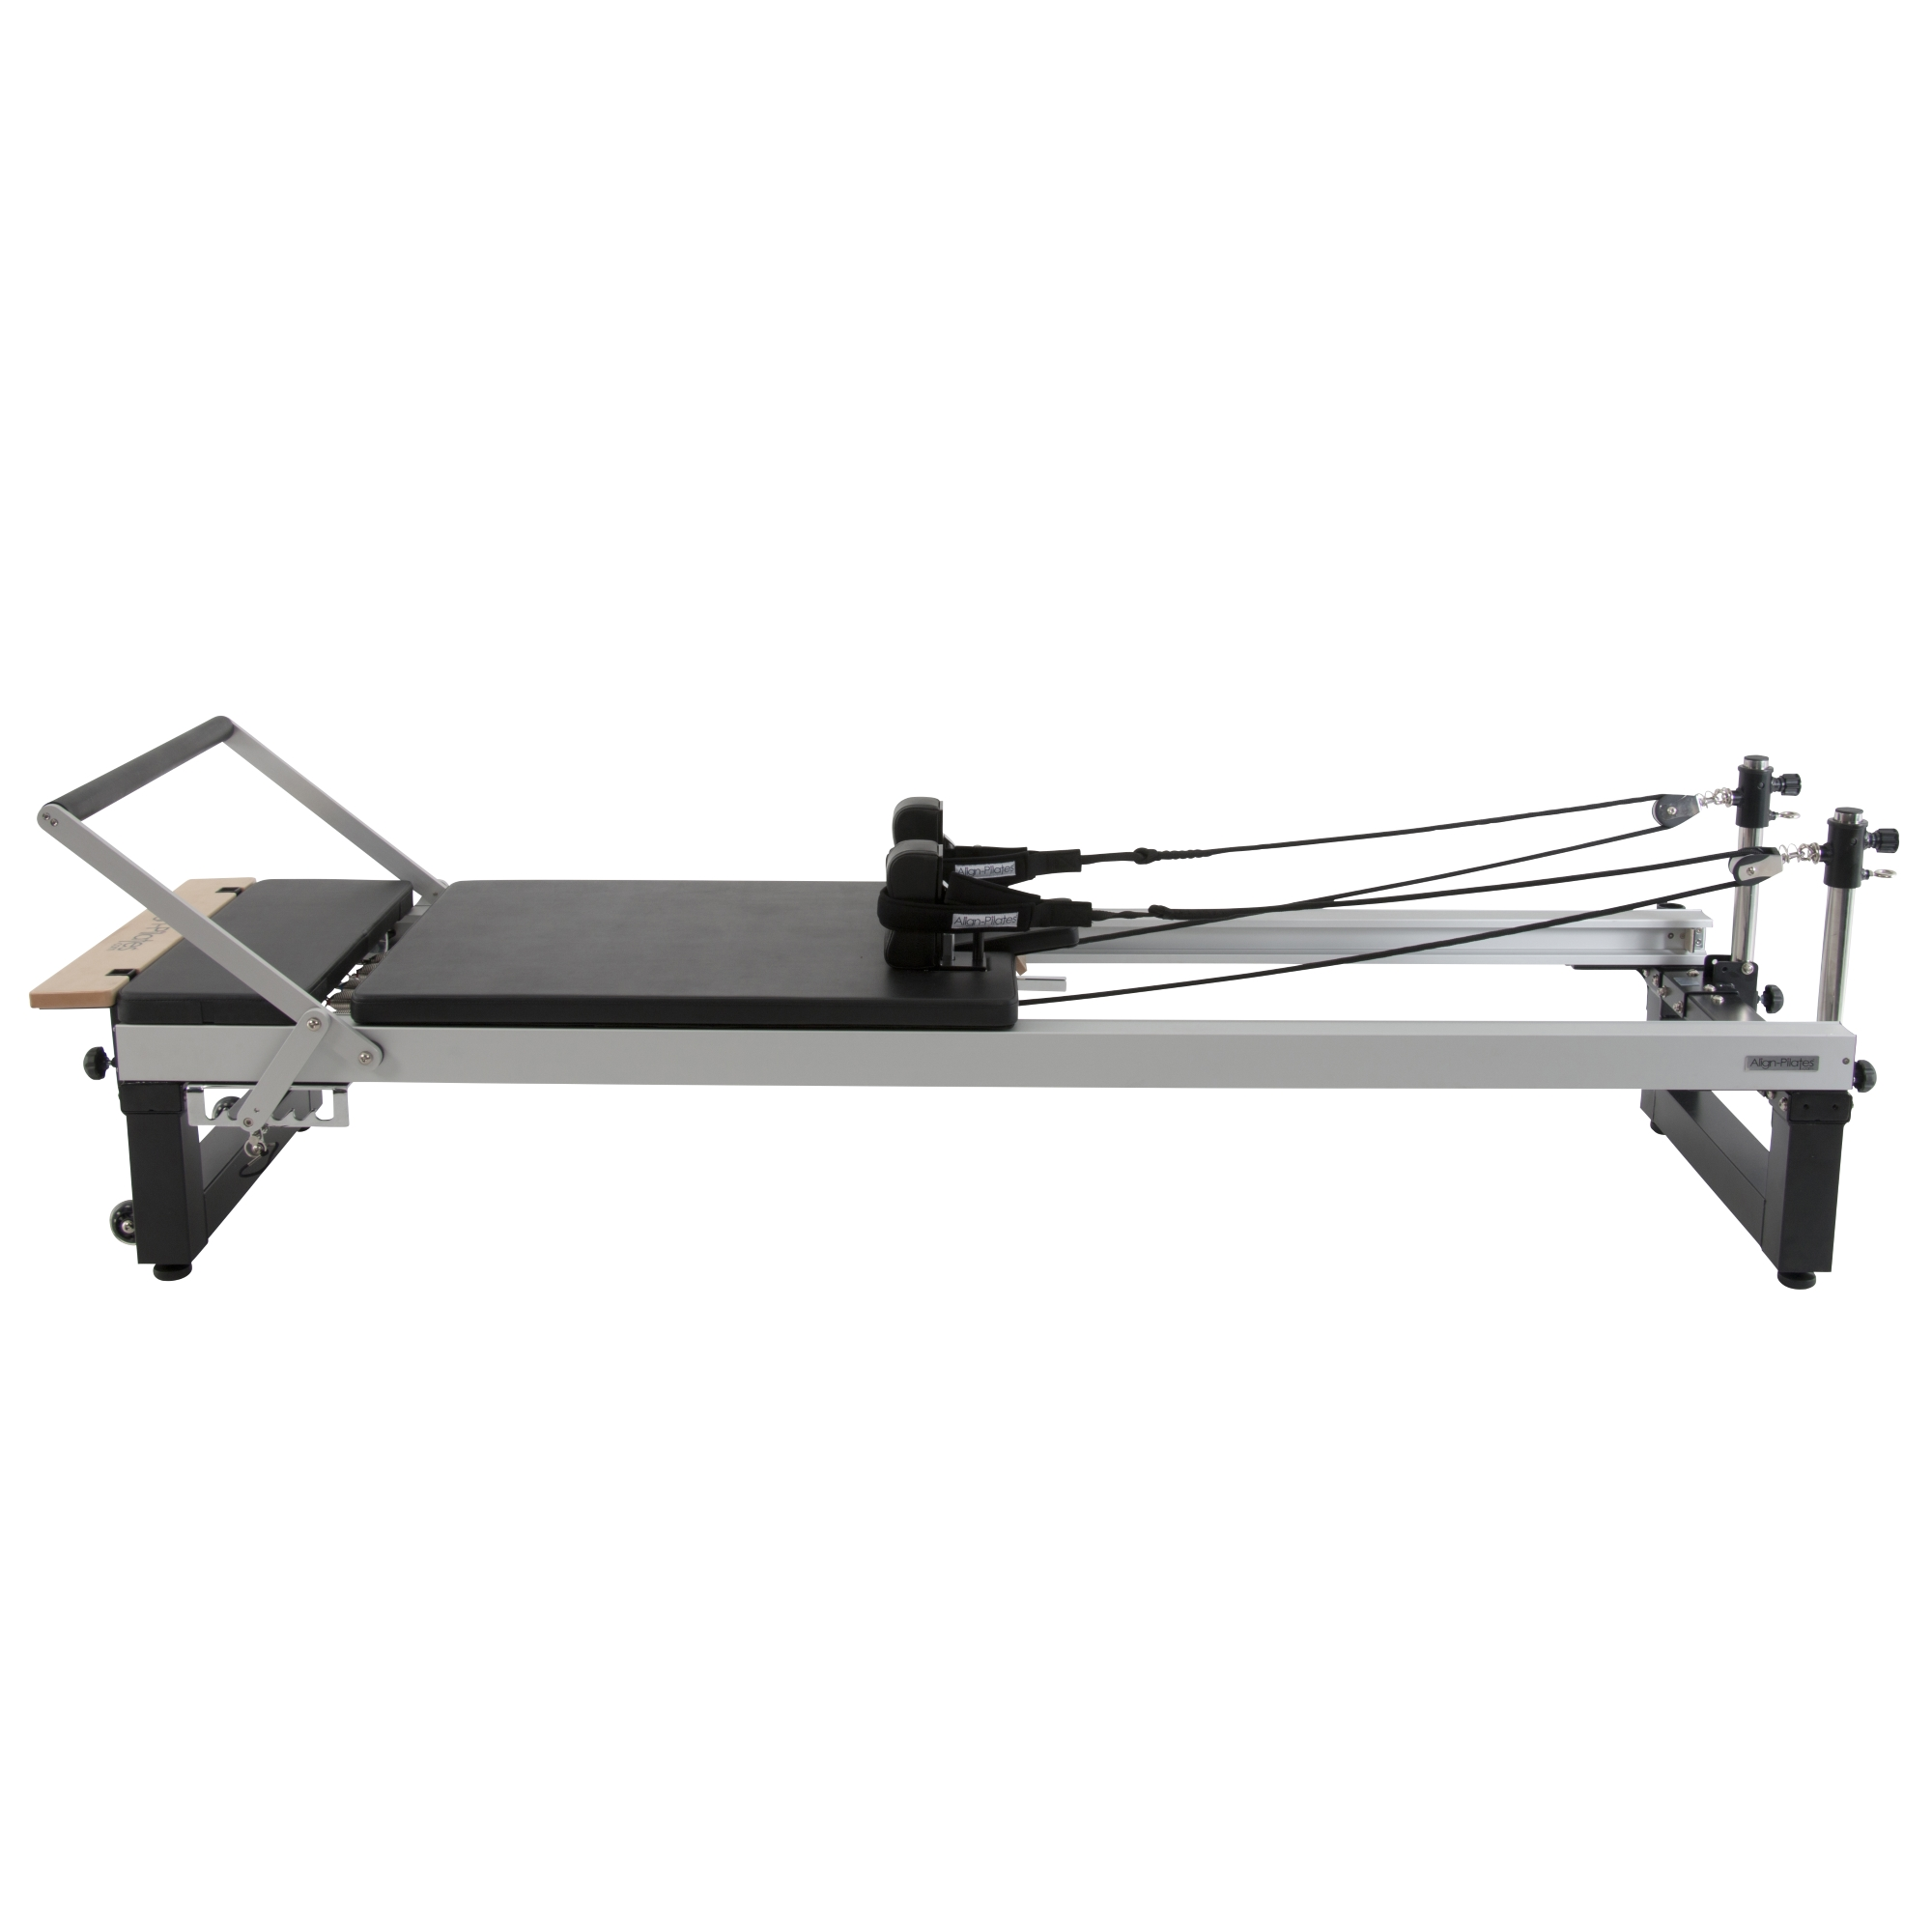 Align-Pilates A2RII Reformer With Low Legs